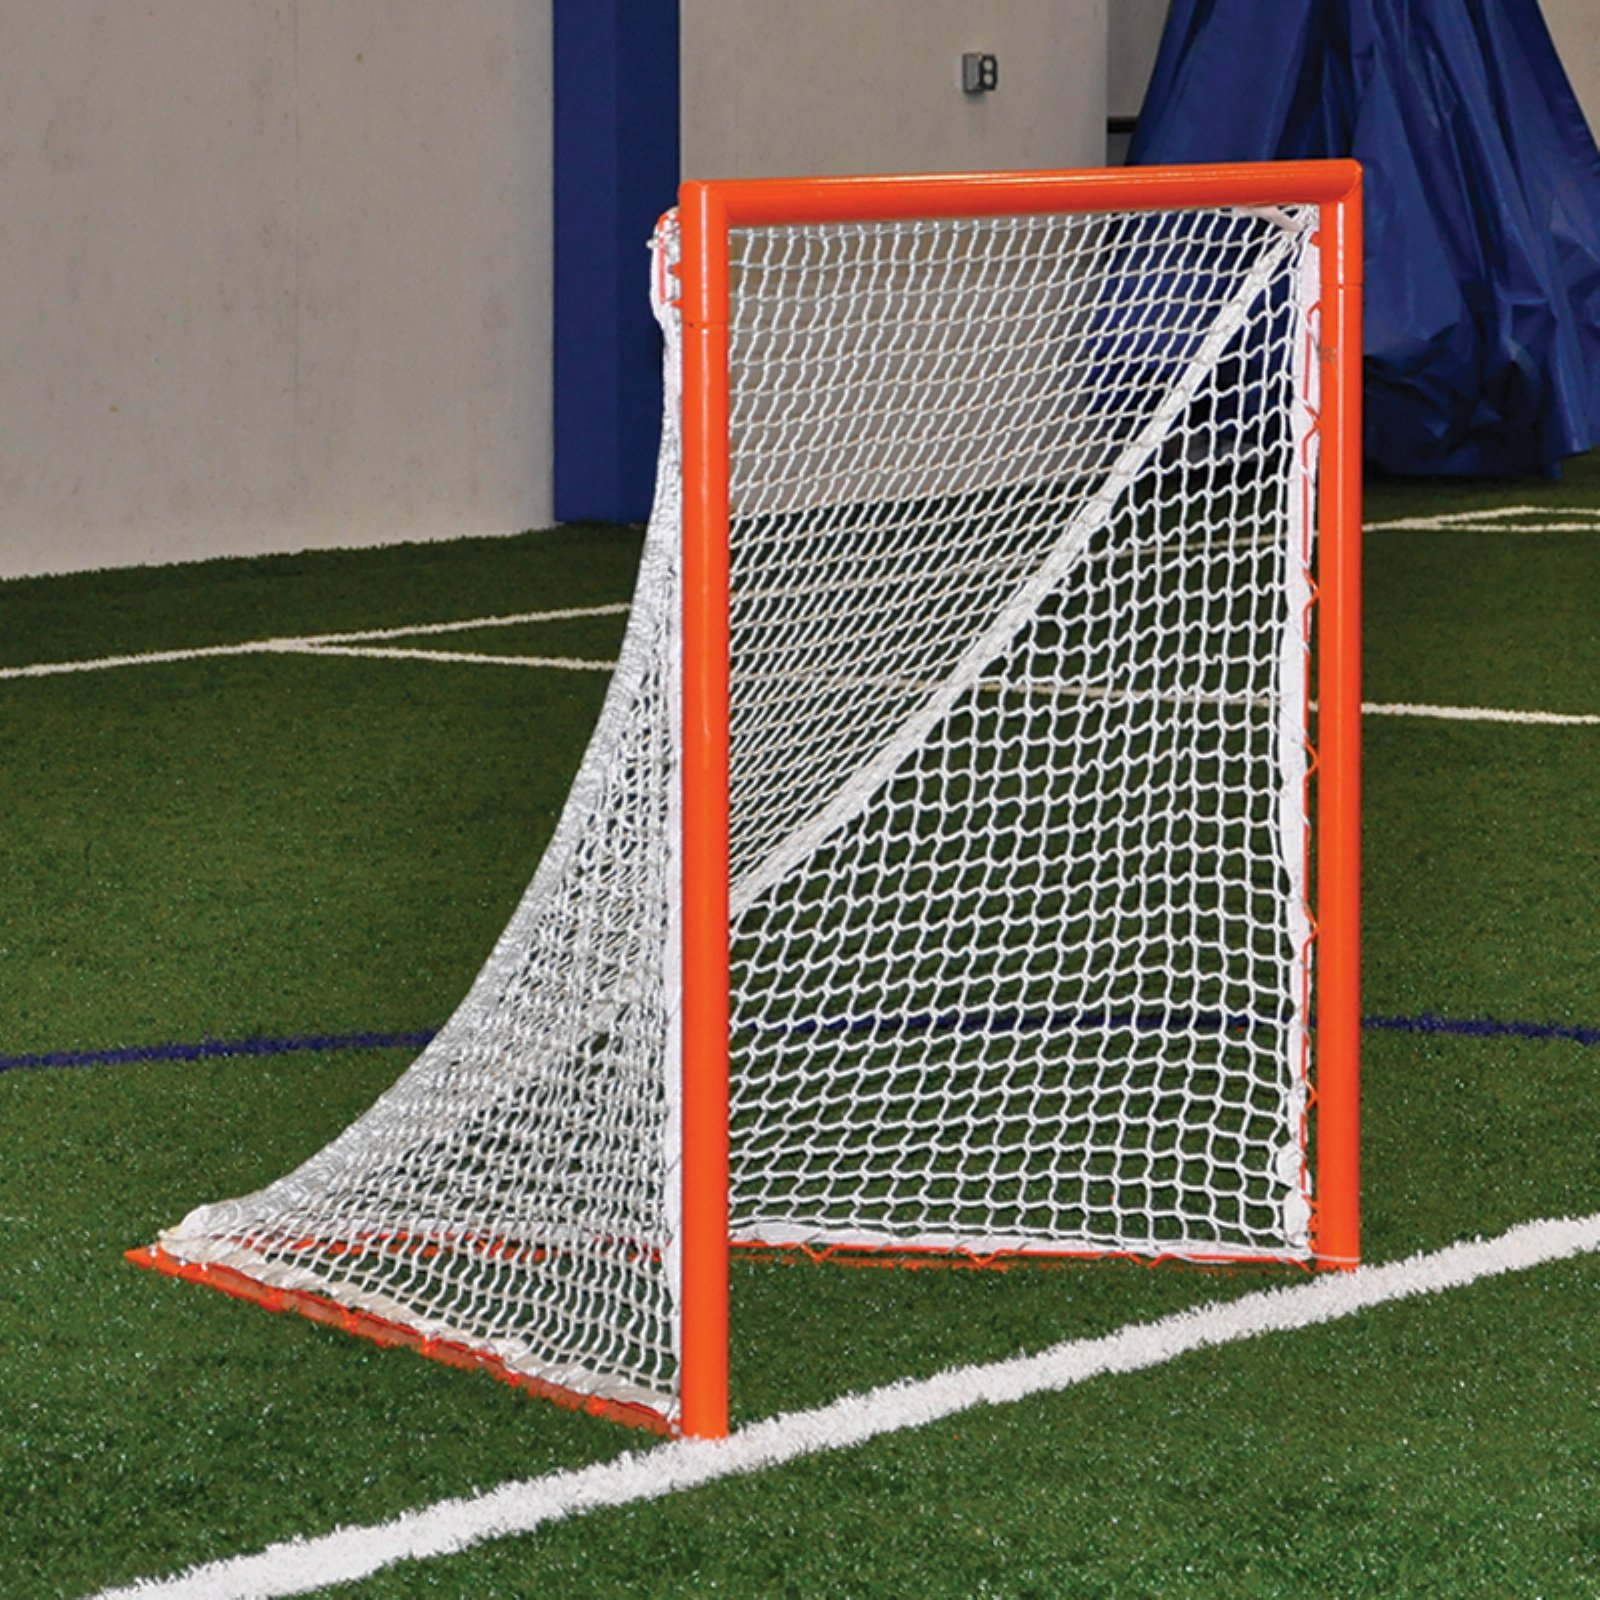 Jaypro Box Lacrosse Goal by